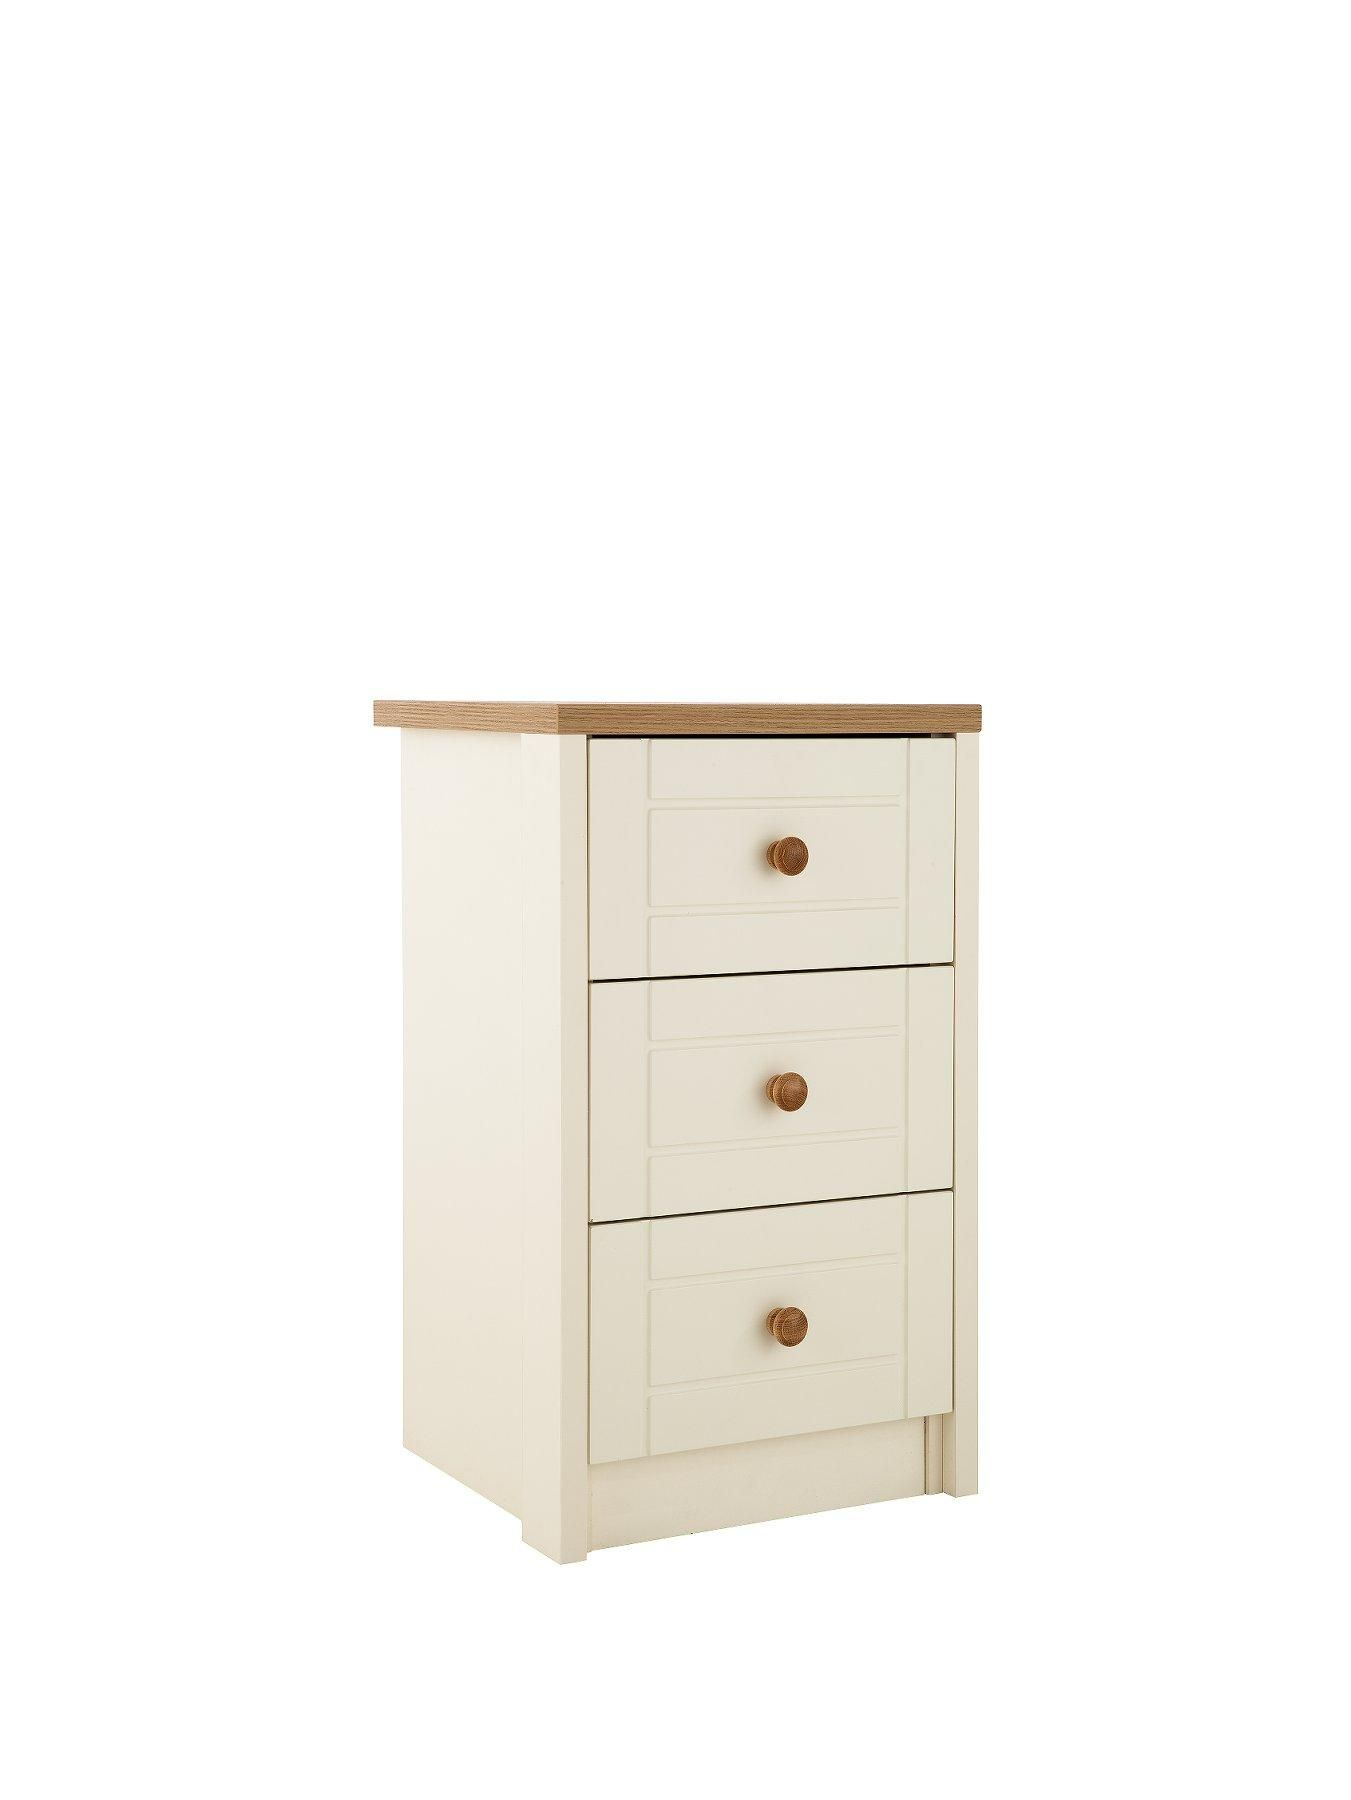 Alderley Ready Assembled 3 Drawer Bedside Chest